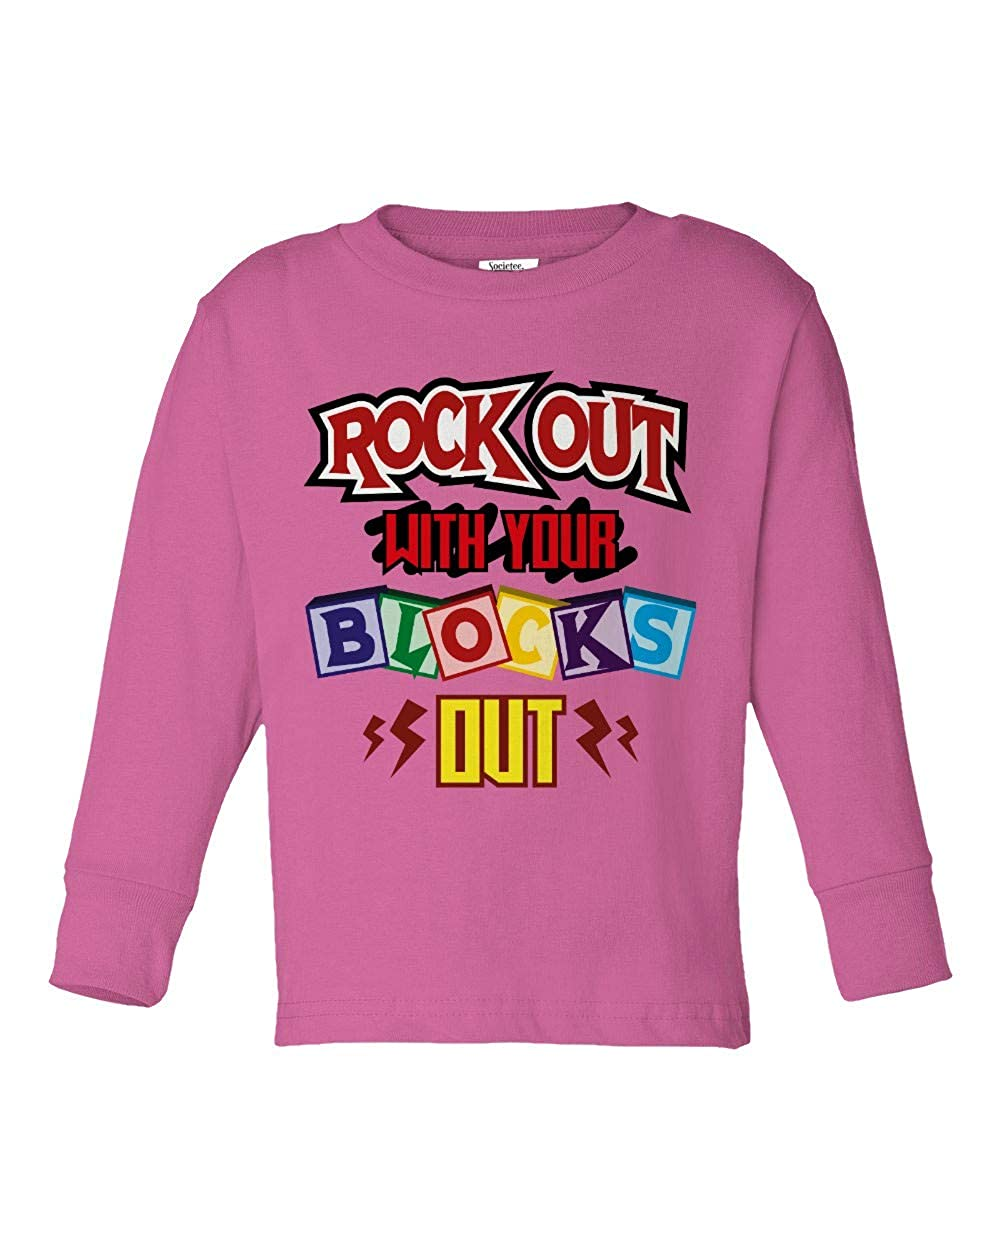 Societee Rock Out with Your Blocks Out Girls Boys Toddler Long Sleeve T-Shirt